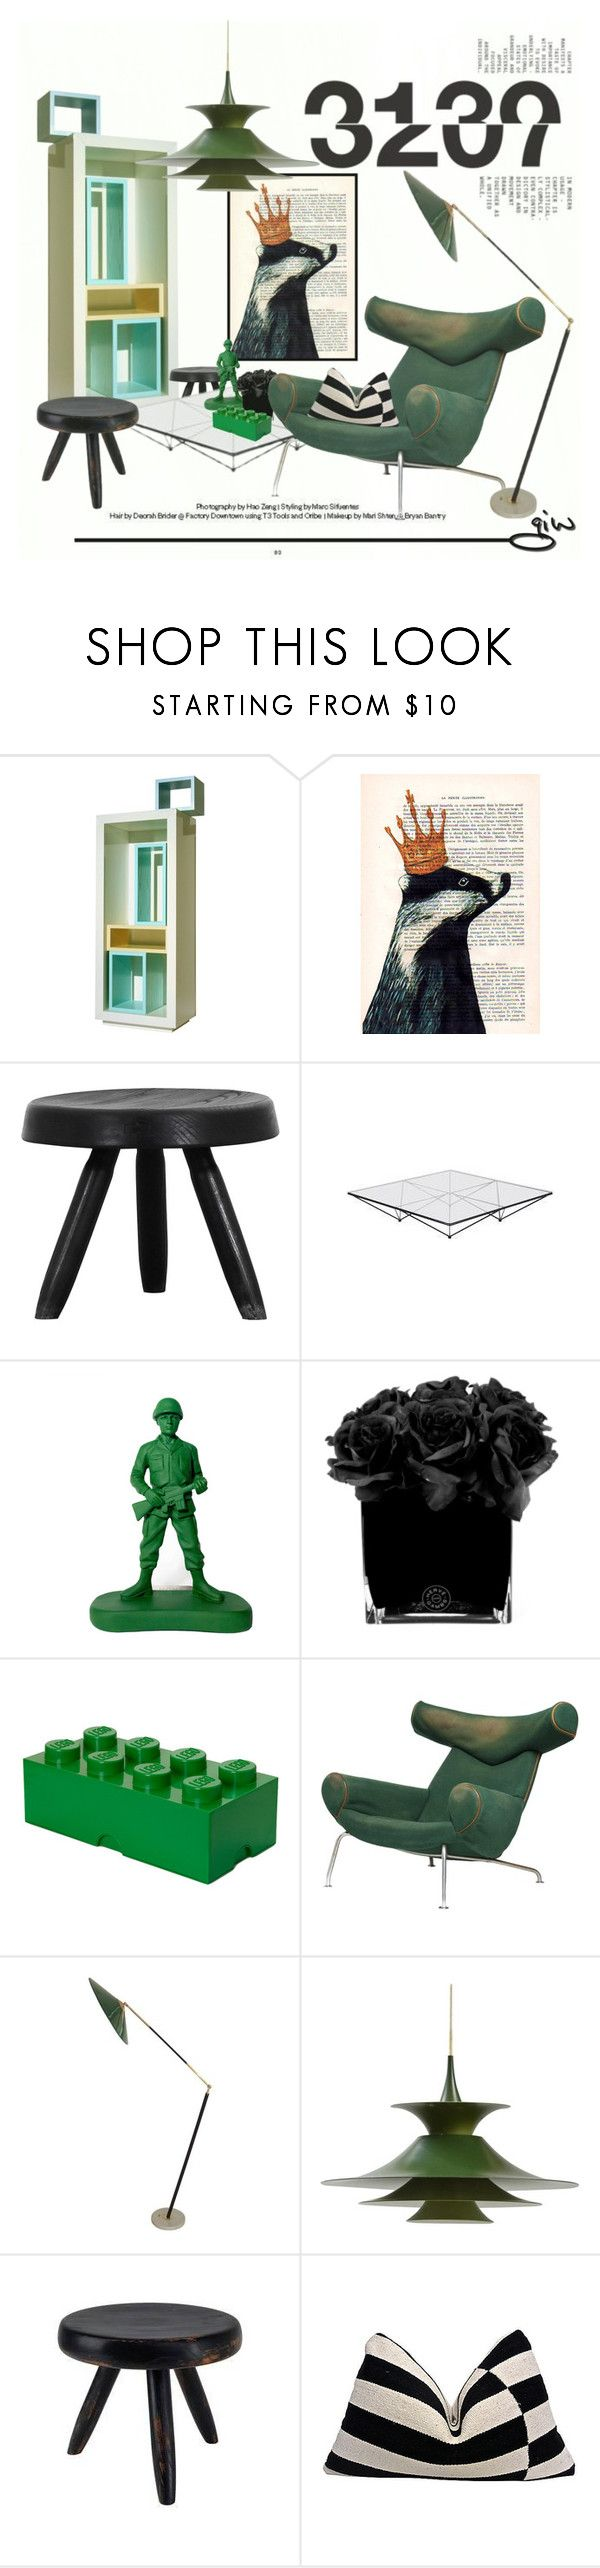 regal by ian giw liked on polyvore featuring interior